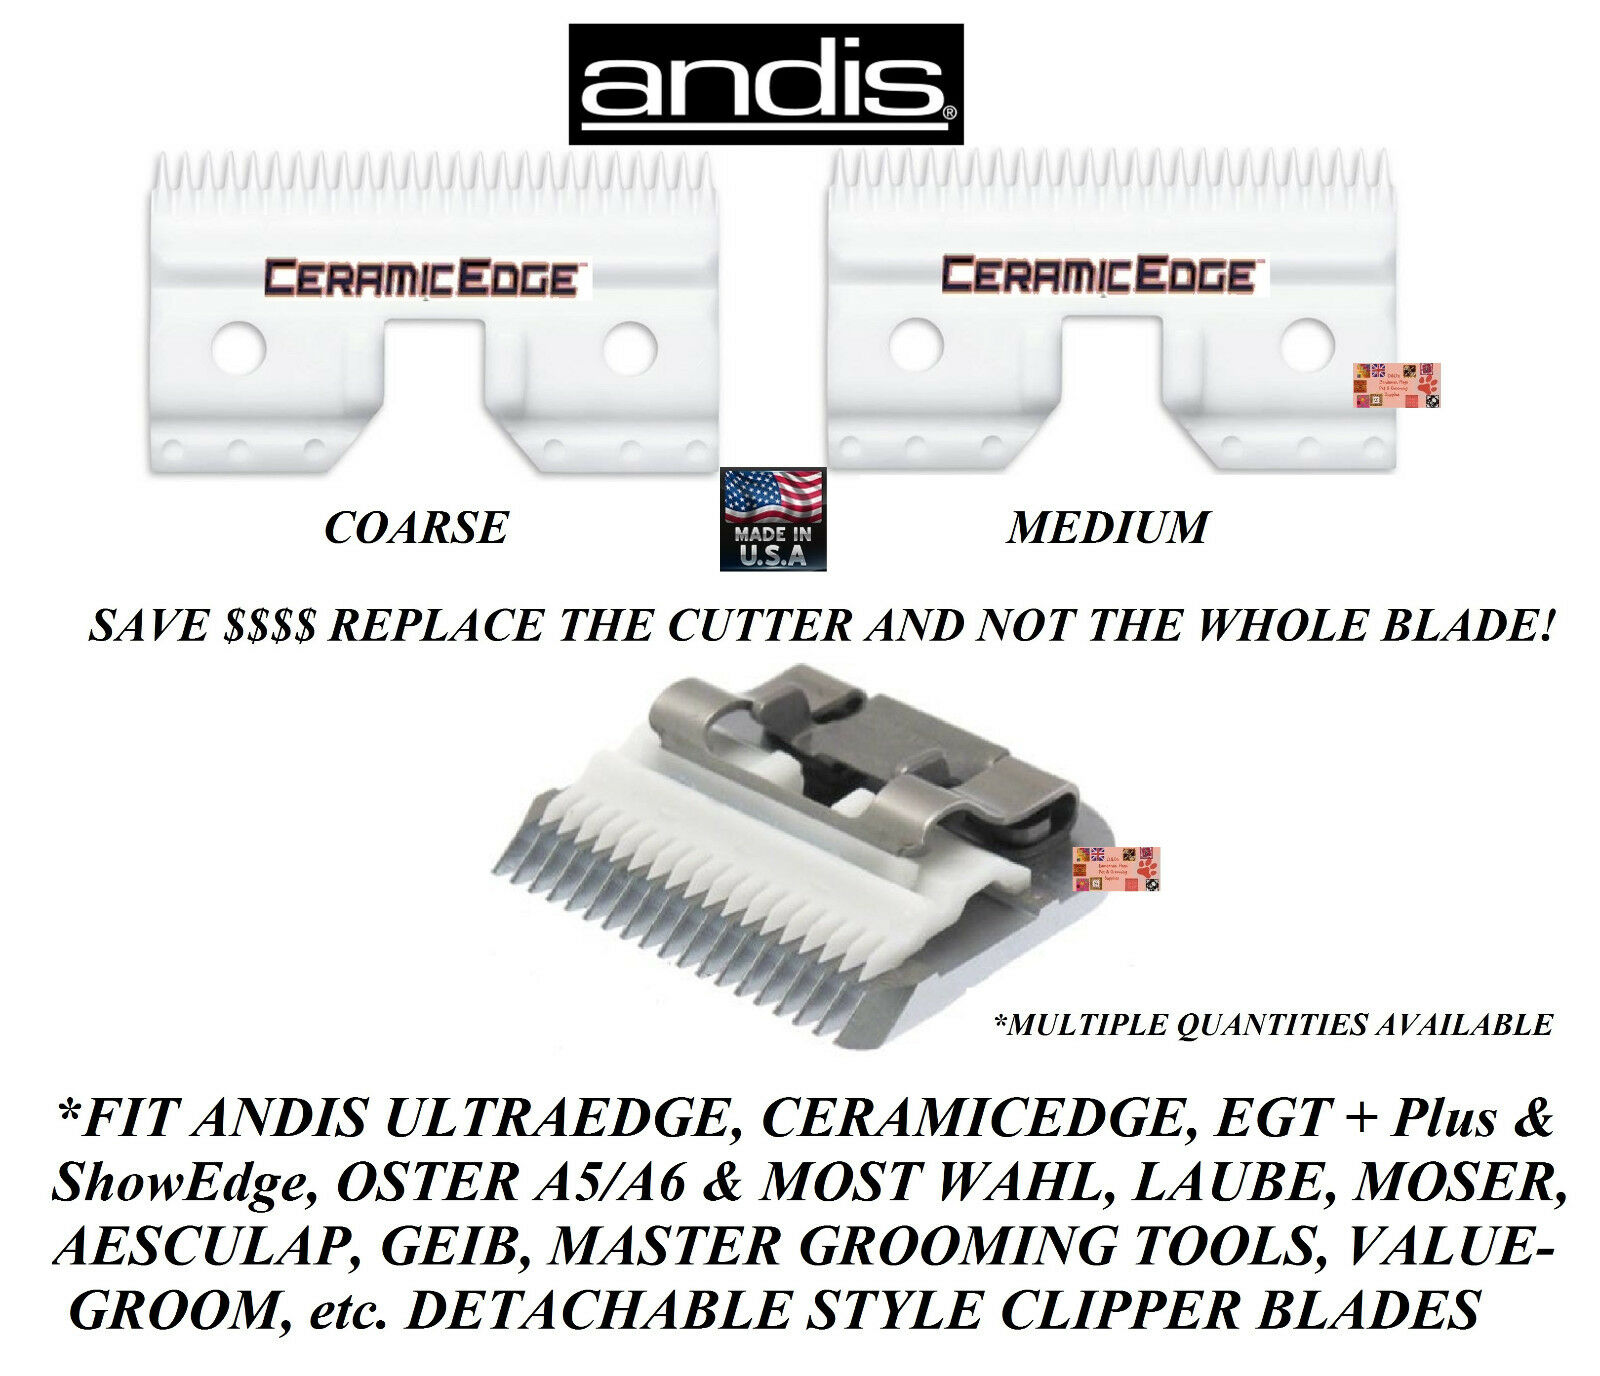 Andis Ceramic Edge Replacement Blade CUTTER*Fit AG BG,Oster A5,Most Wahl Clipper